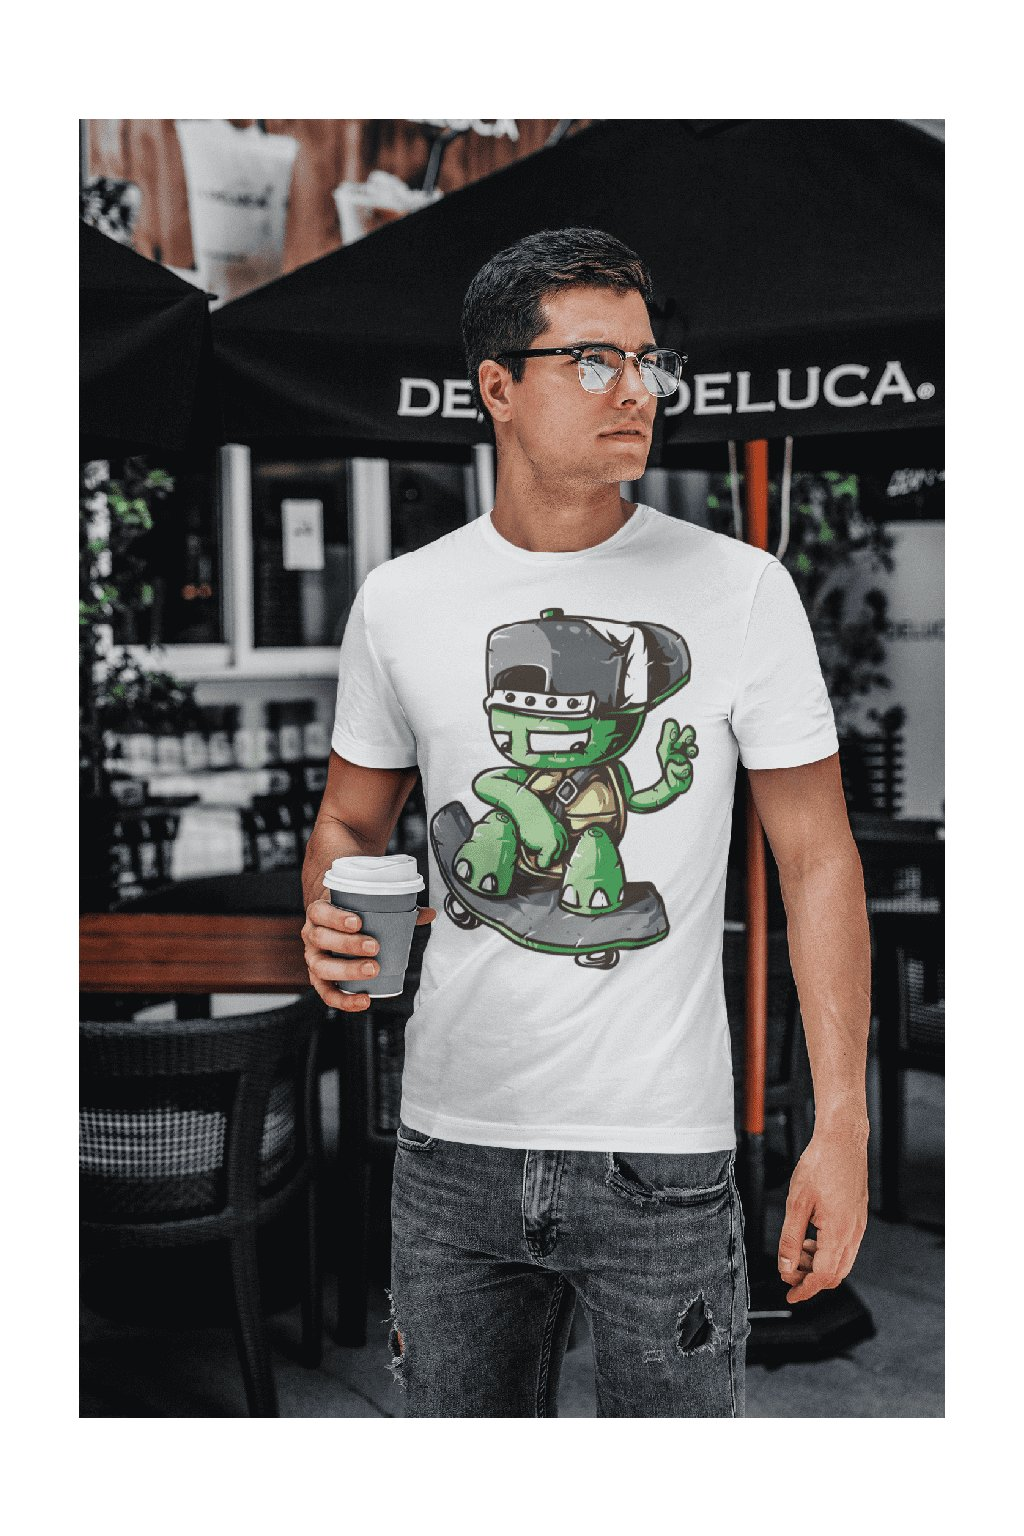 t shirt mockup featuring a young man with glasses drinking coffee 422 el (8)